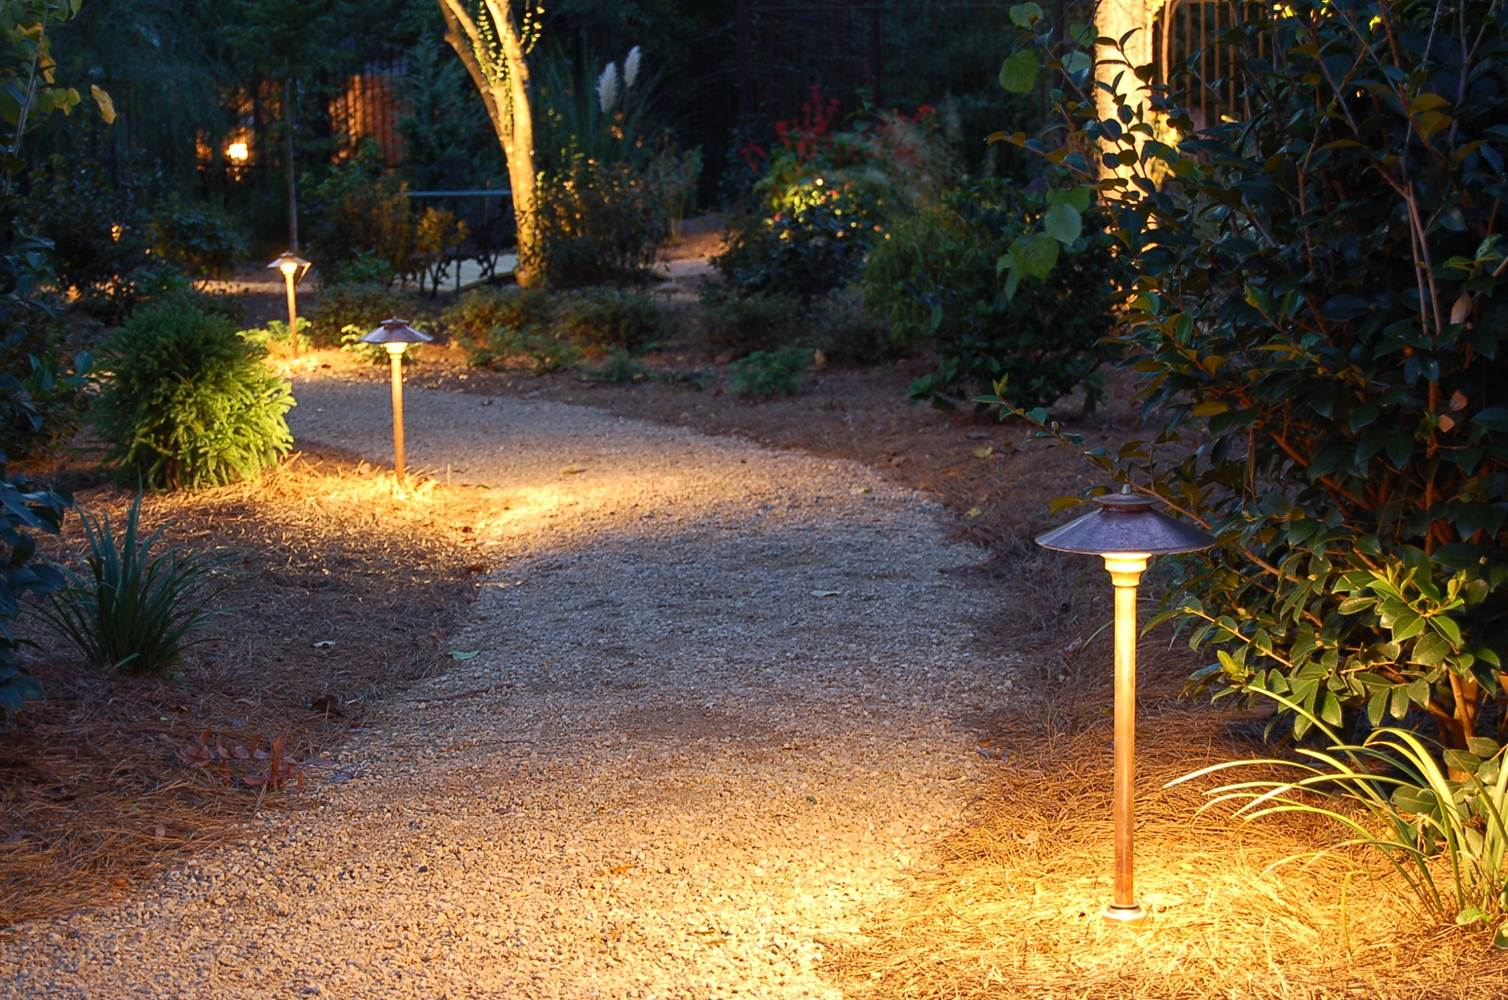 5 Perfect Path Lights For The Home - Louie Lighting Blog on walkway landscape lighting, walkway lighting fixtures, walkway signage, walkway bollard lighting, walkway low voltage lighting,